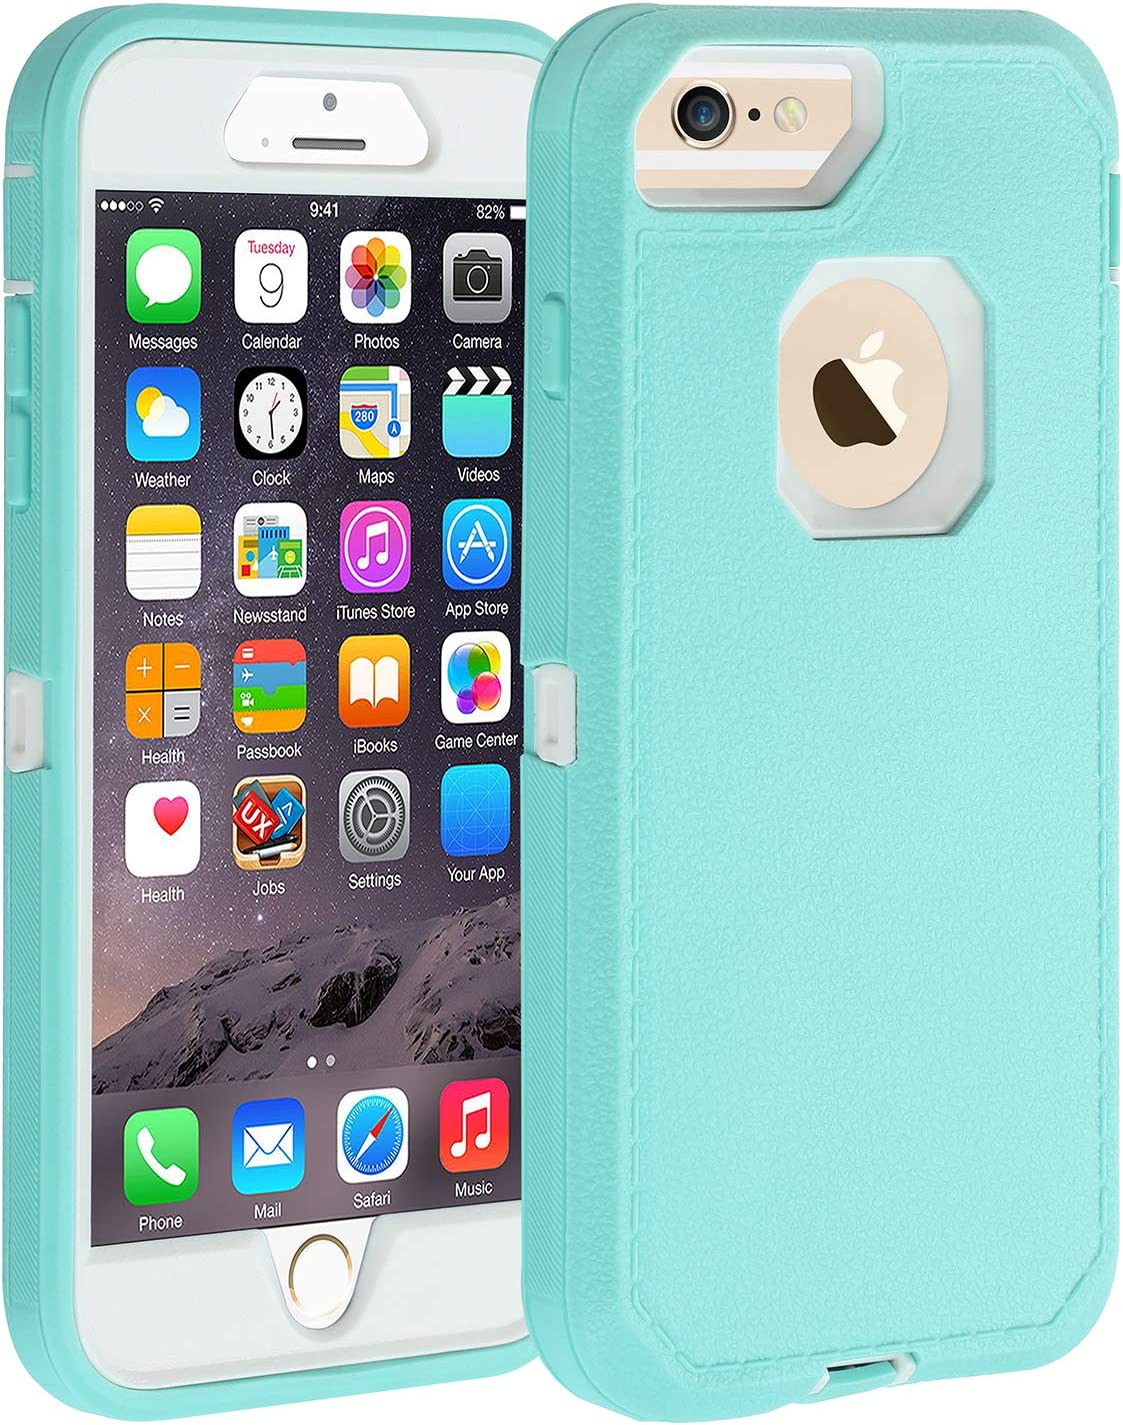 Co-Goldguard Case for iPhone 6s Plus/6 Plus,Heavy Duty [No Screen Protector] 3 in 1 Cover with Screen Bumper Shell for iPhone 6+/6s+ 5.5 inch, Light Blue/White